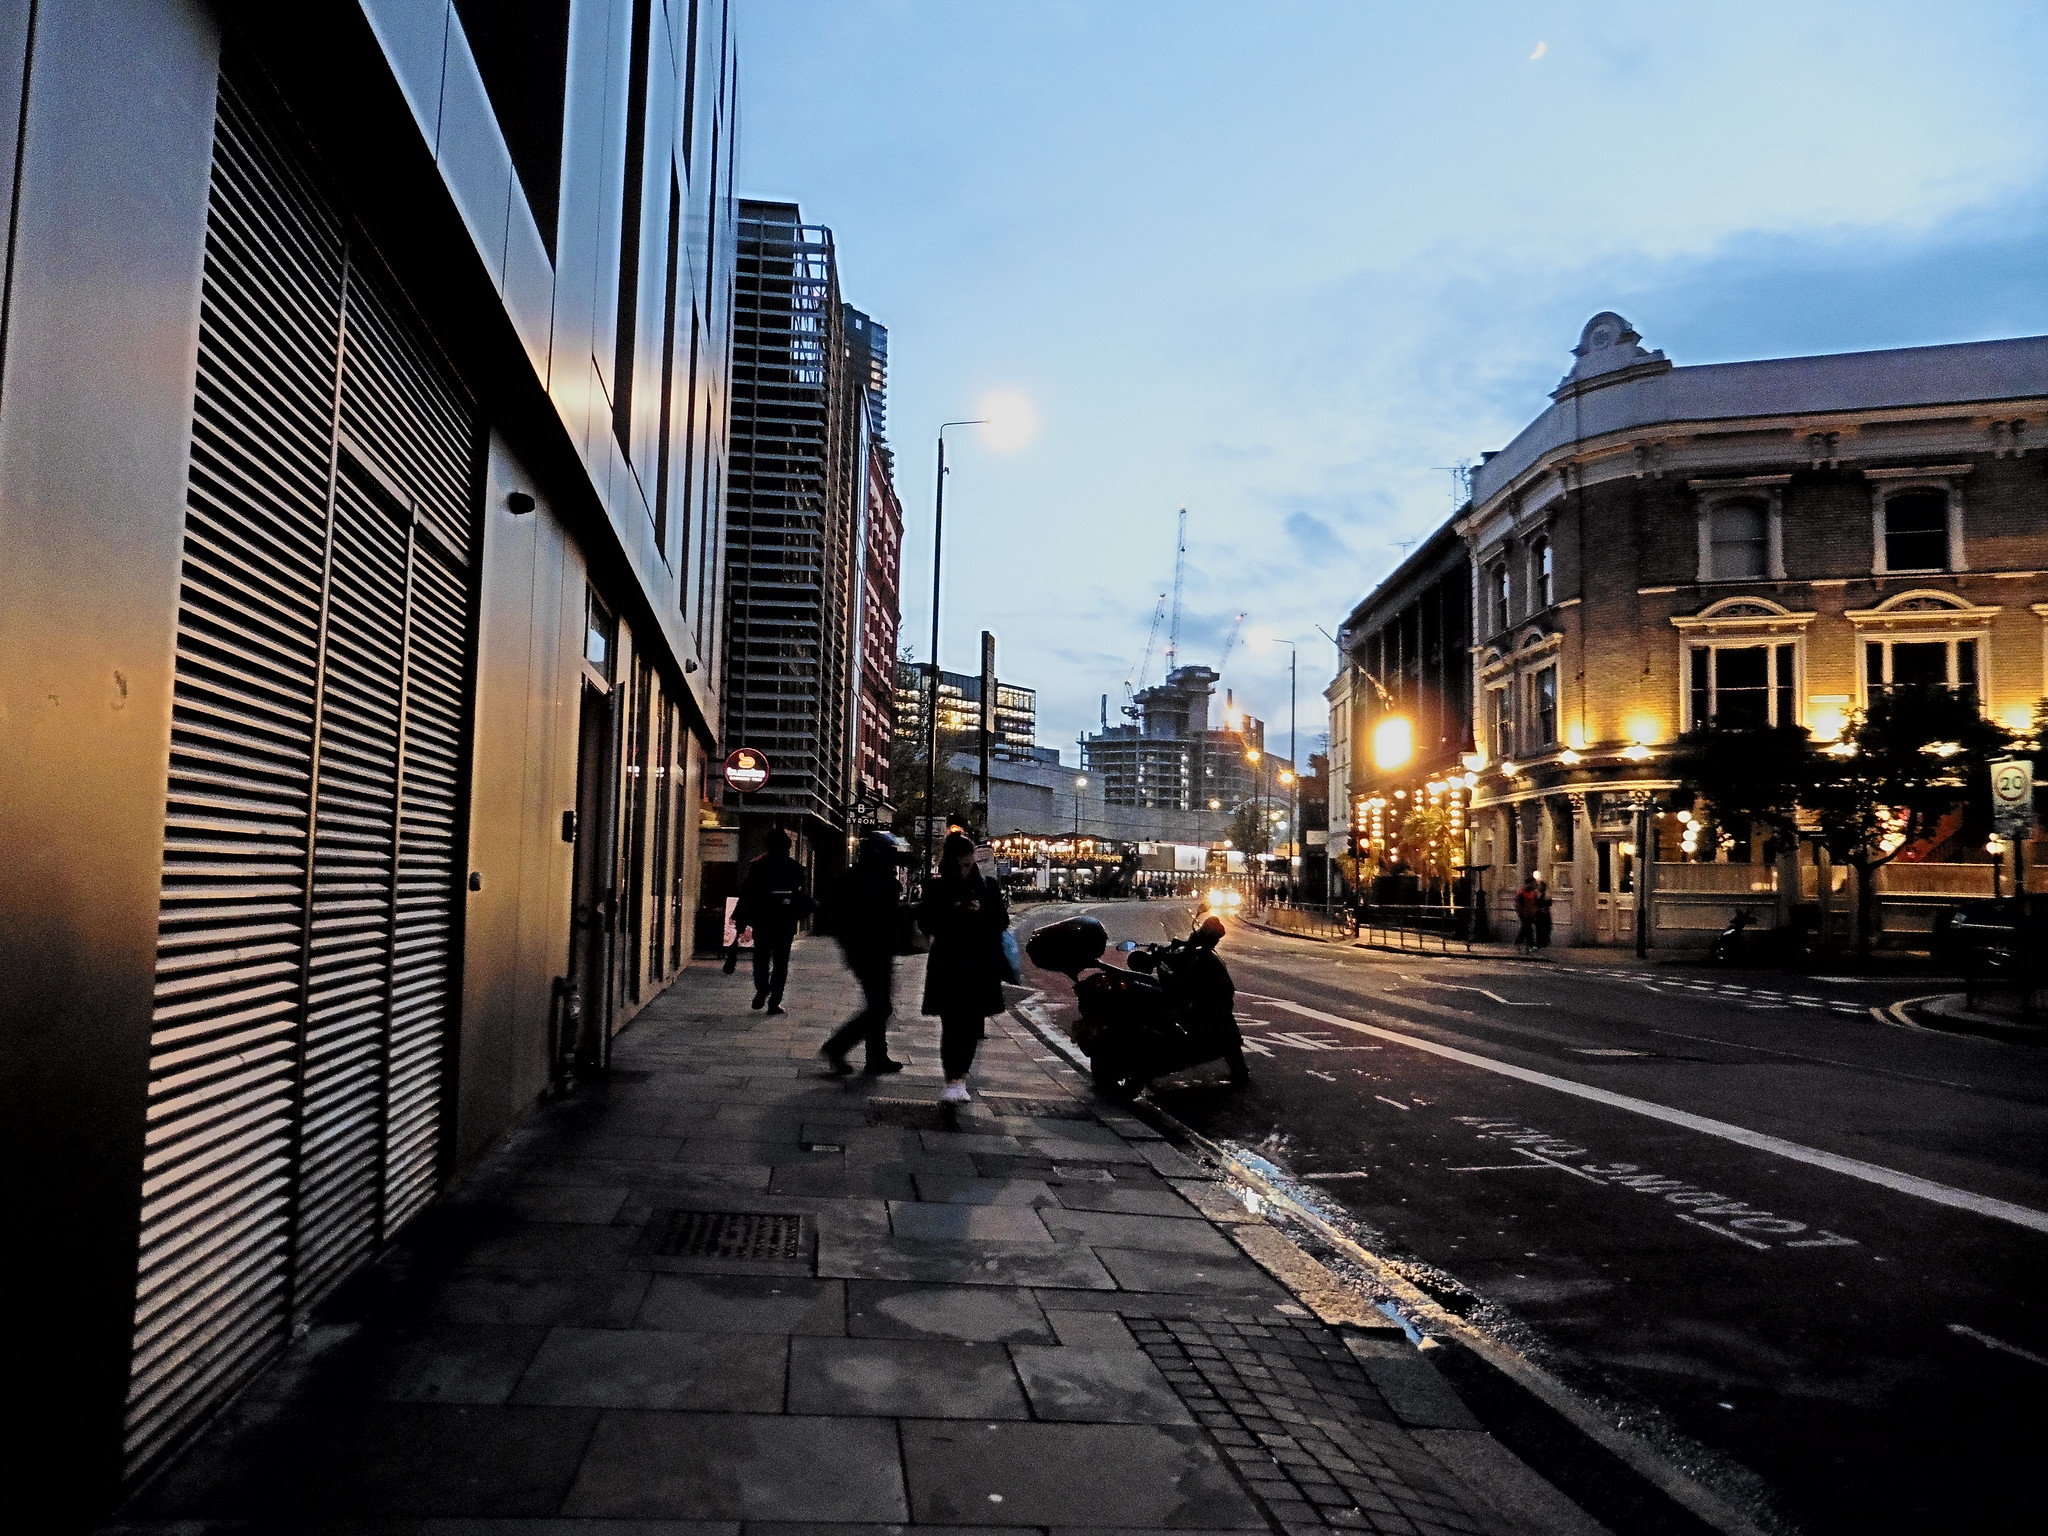 Shoreditch, by Terry Freedman